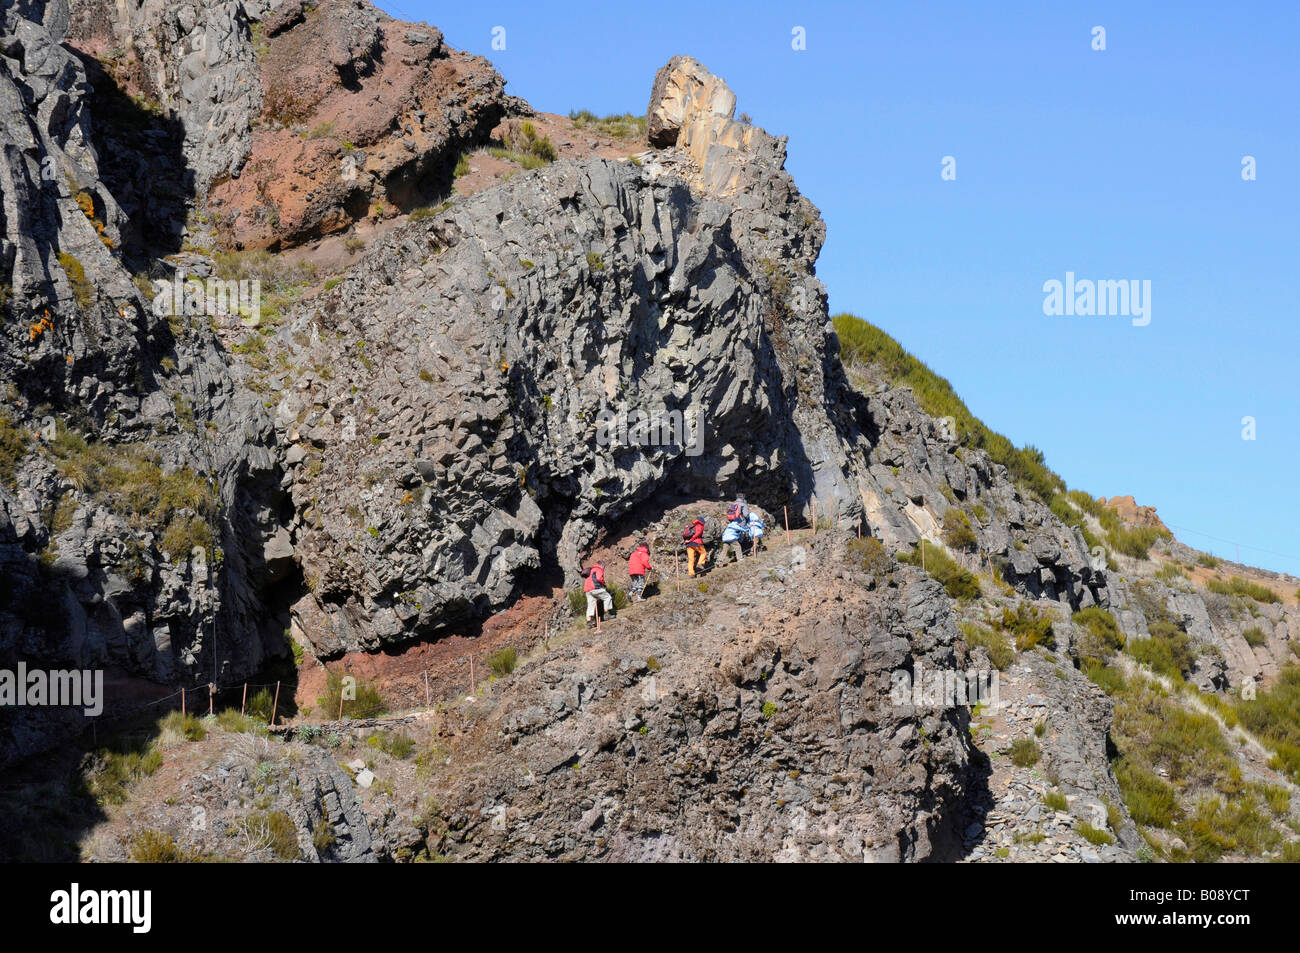 Hikers in mountain landscape, central mountains, Madeira, Portugal - Stock Image